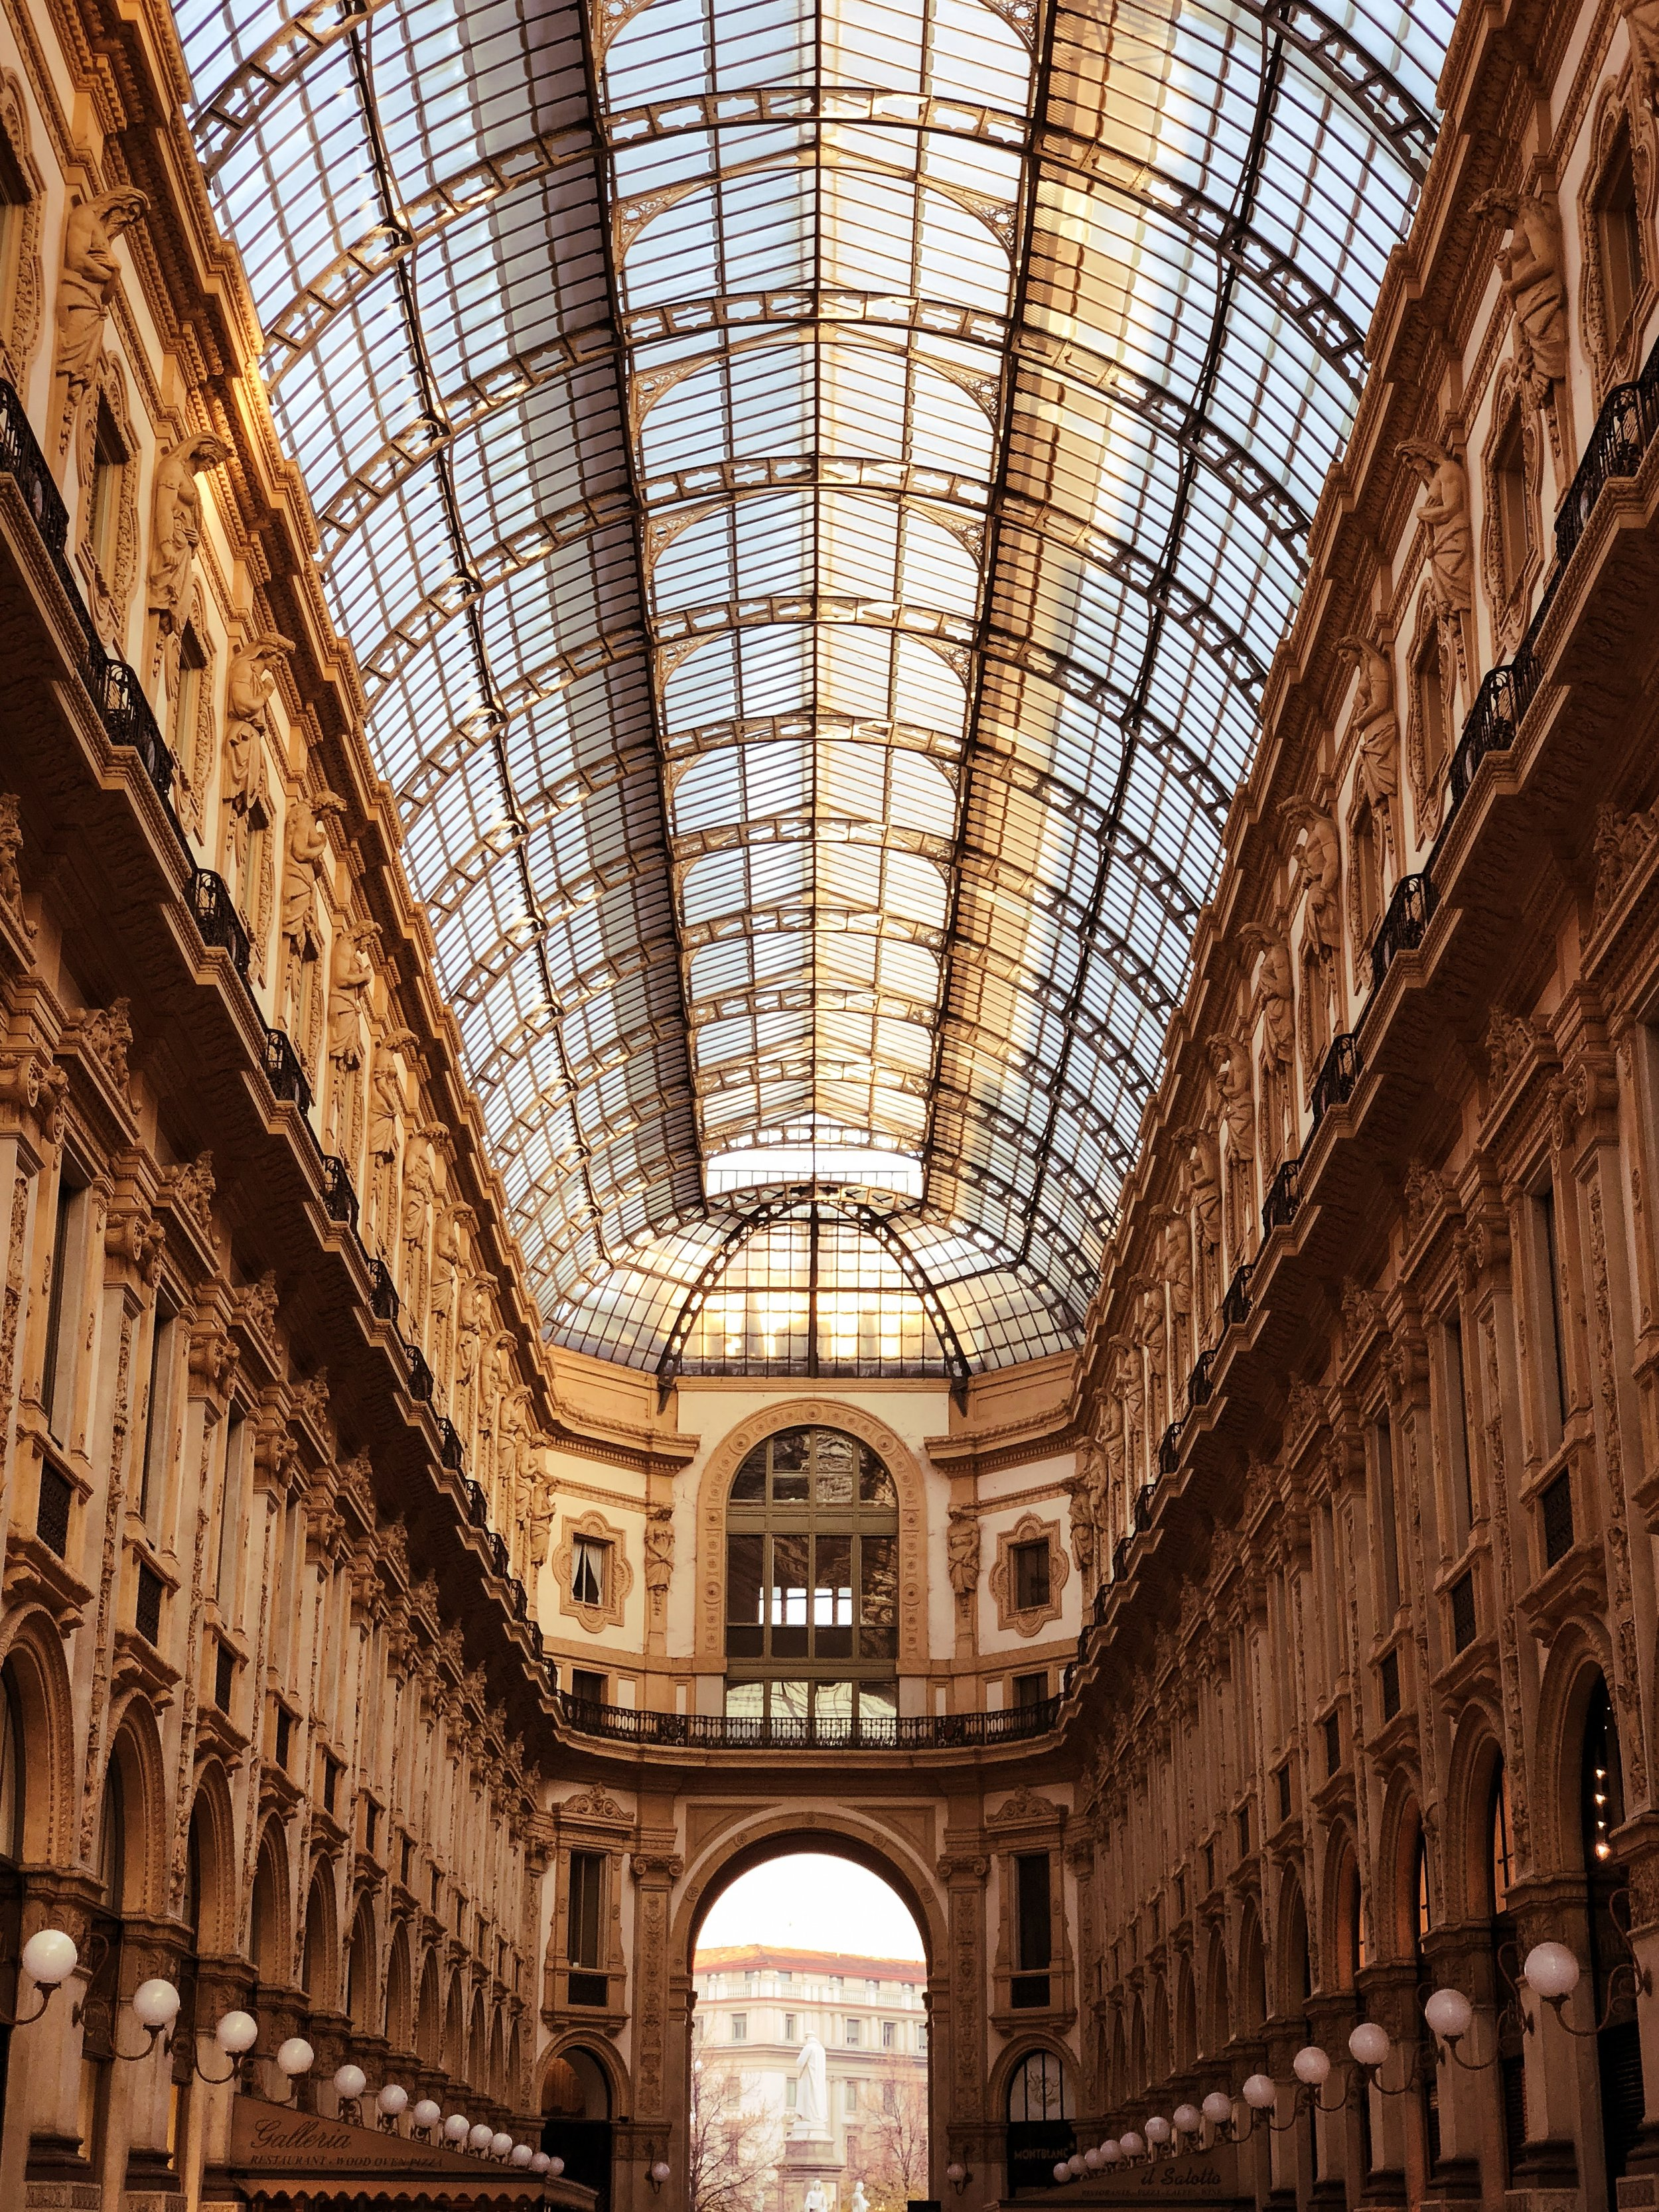 Milan - Shoot, edit and post while your better half is shopping.